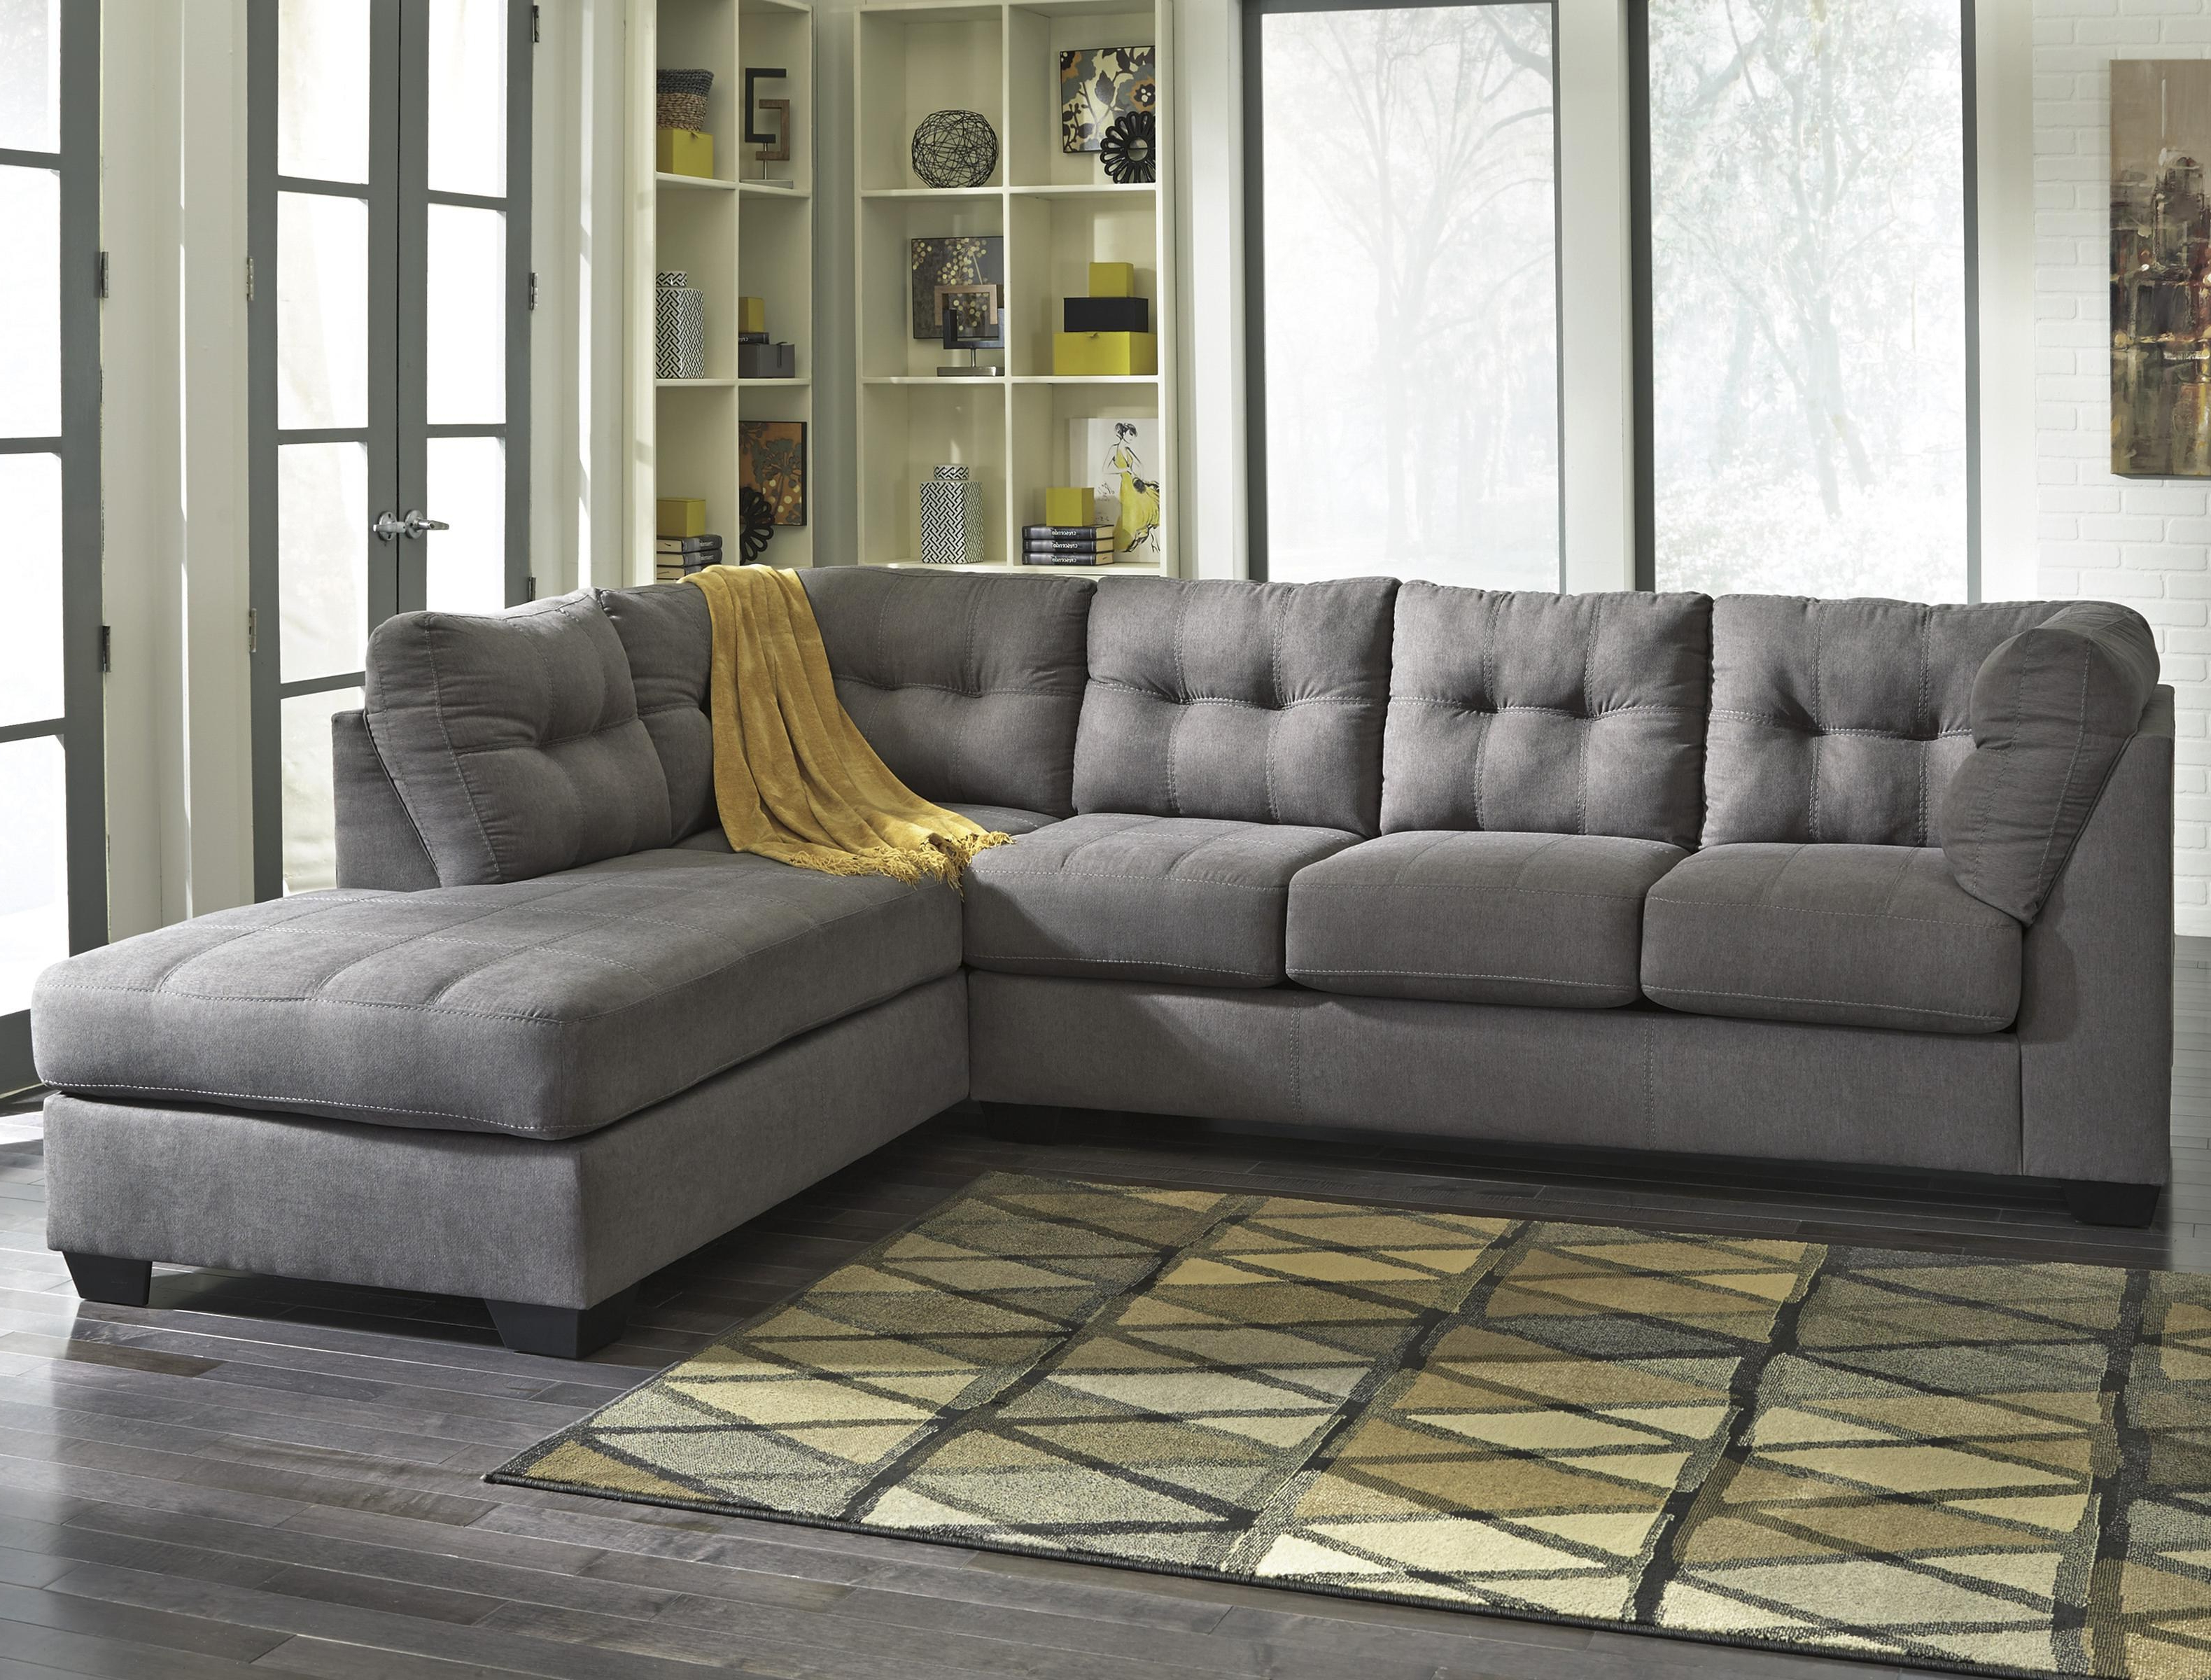 Kerri 2 Piece Sectionals With Laf Chaise Within 2019 What To Know Before Buying A 3 Piece Sectional Sofa – Elites Home Decor (Gallery 6 of 20)